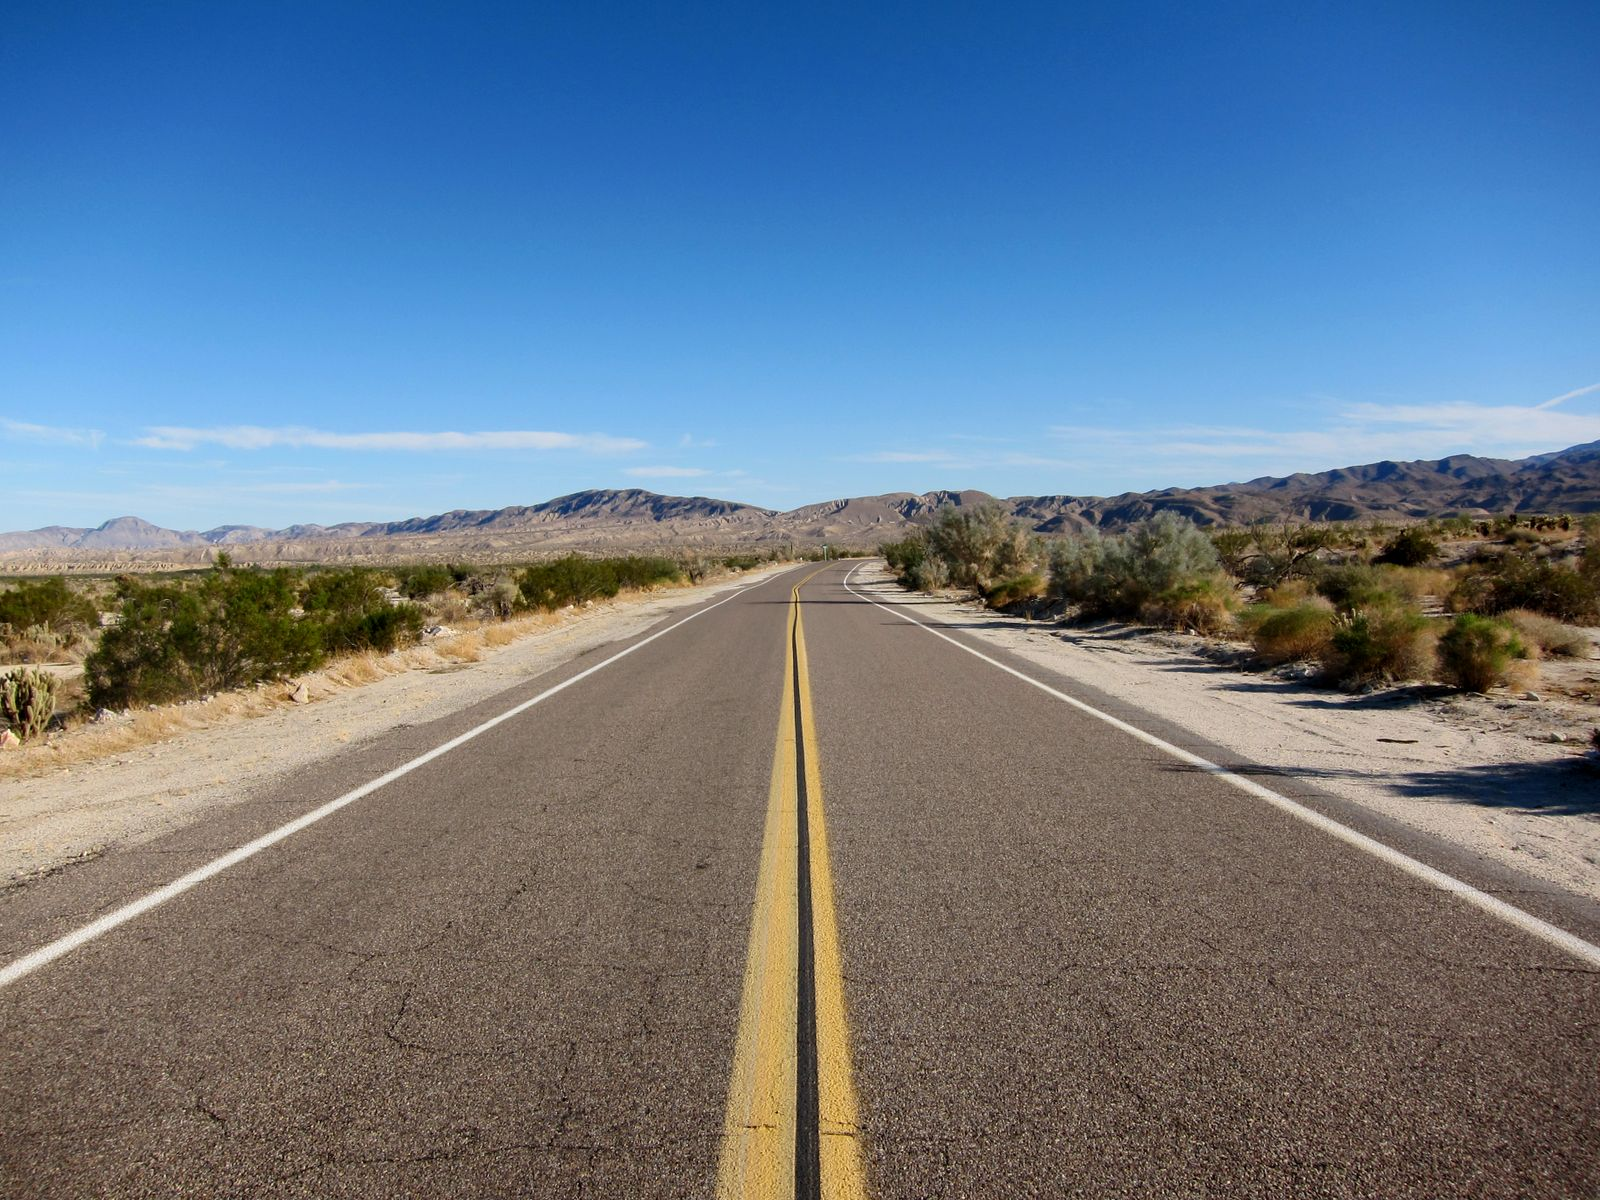 Anza Borrego's S2 highway was deserted on this Thursday afternoon